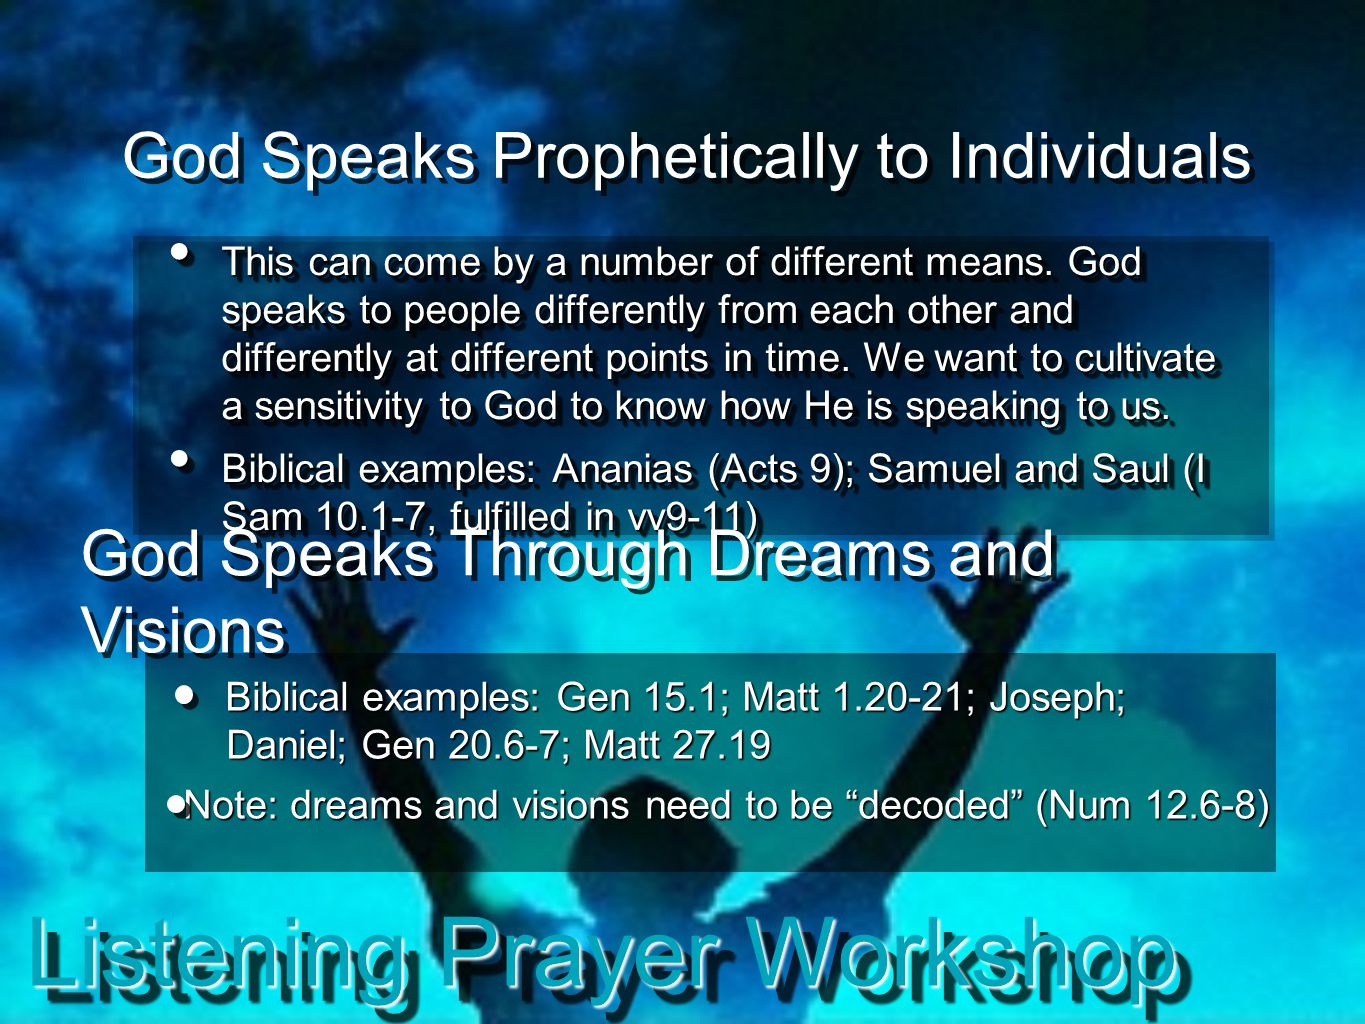 Listening Prayer Workshop God Speaks Prophetically to Individuals This can come by a number of different means. God speaks to people differently from